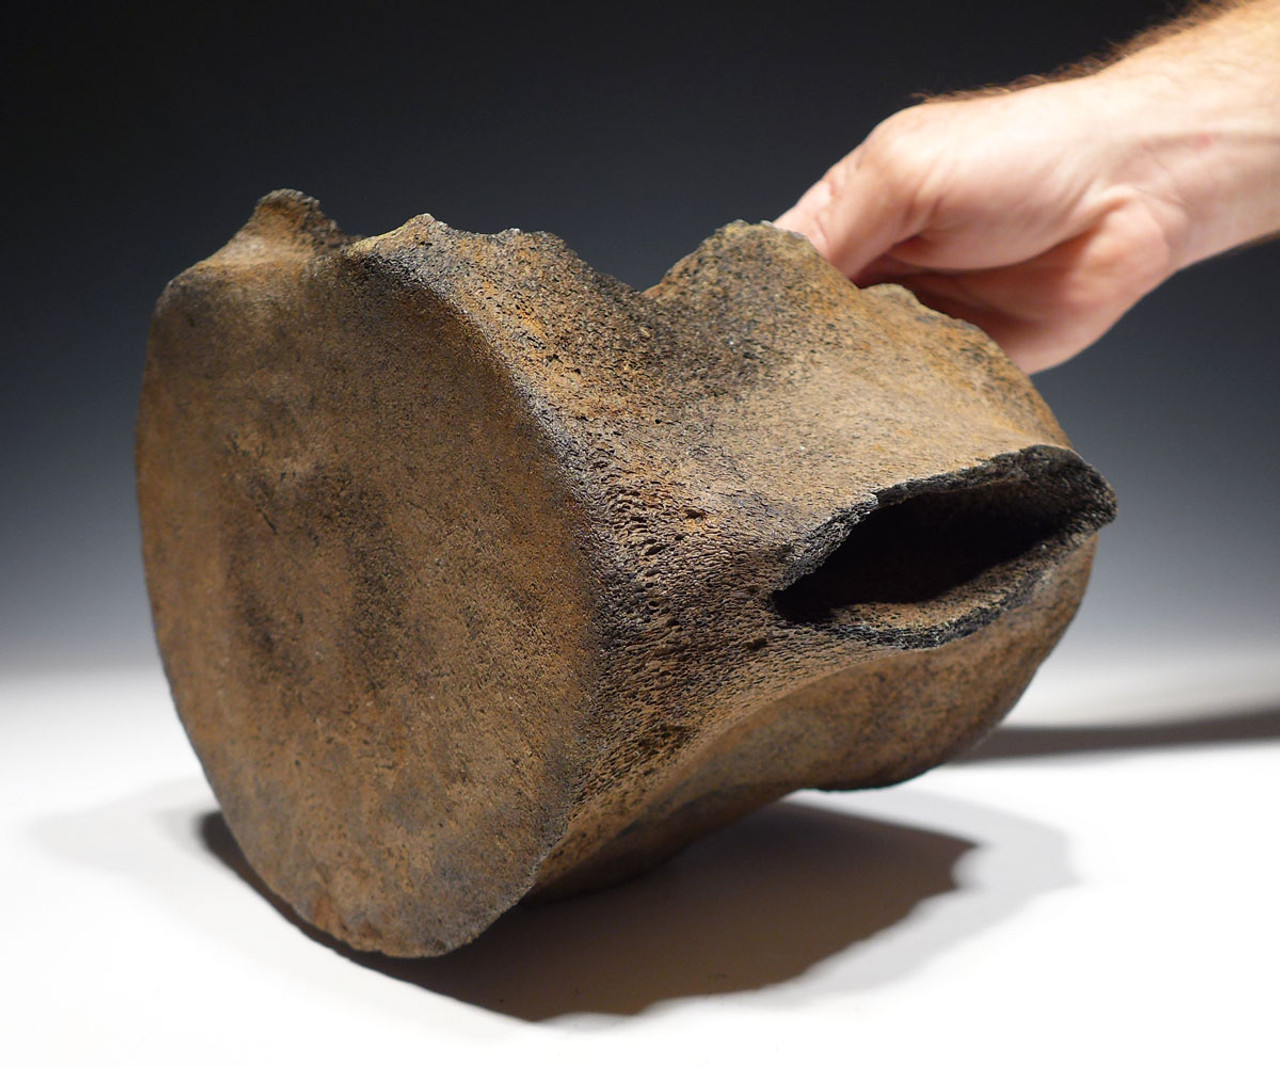 LARGE PREHISTORIC FOSSIL SPERM WHALE VERTEBRA WITH EXCELLENT PRESERVATION *WH042